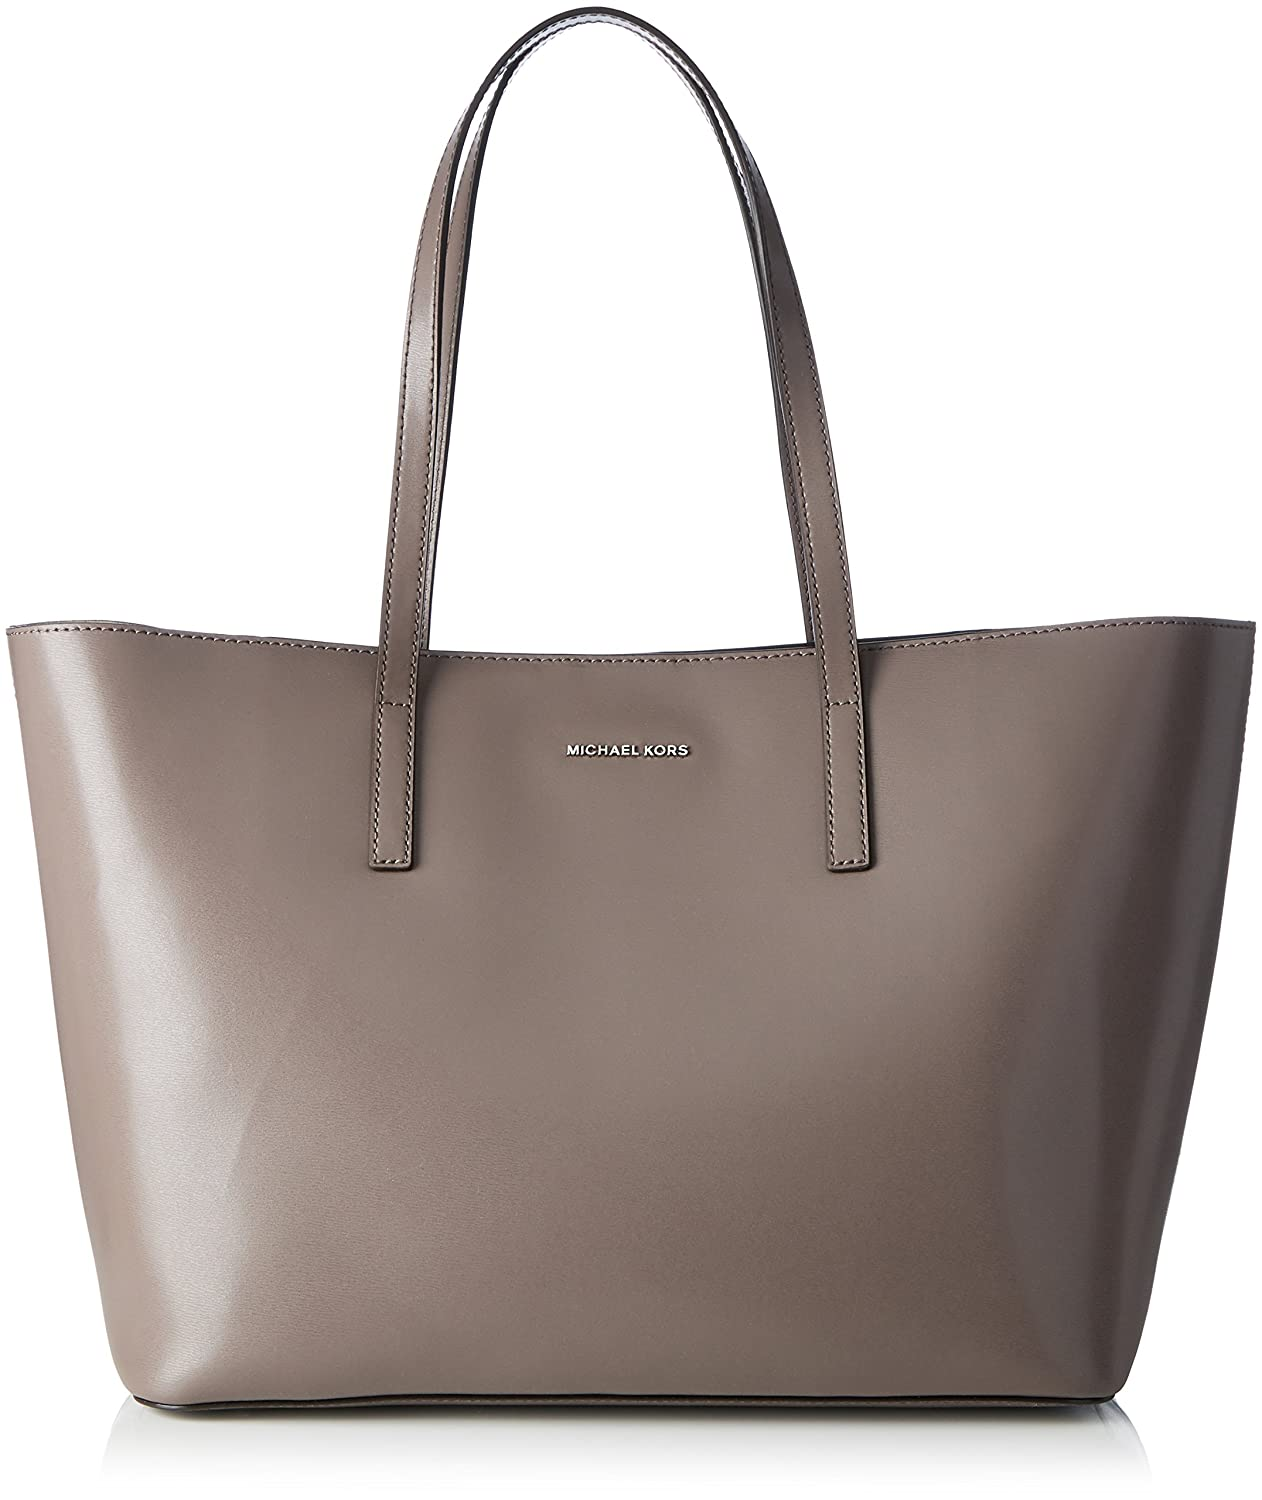 Michael Kors Emry Large Leather, Sacchetto Donna